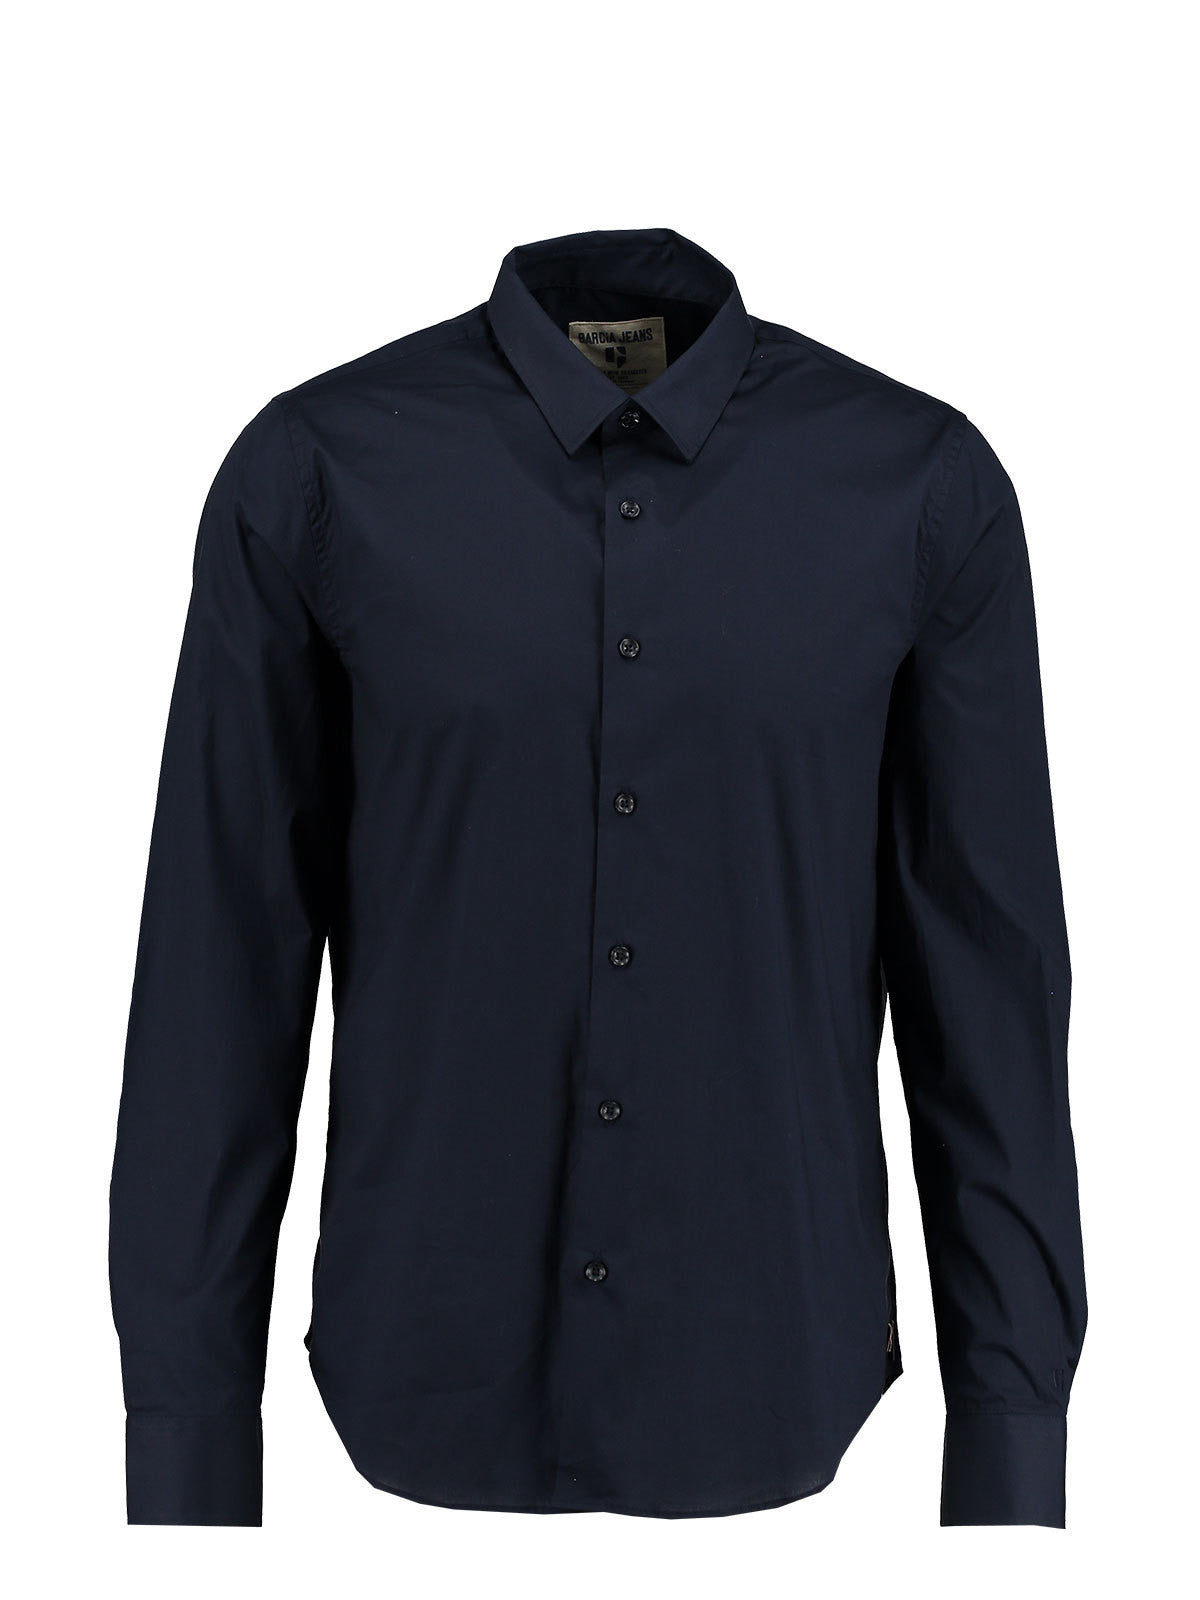 Garcia Men's Long Sleeve Navy Shirt